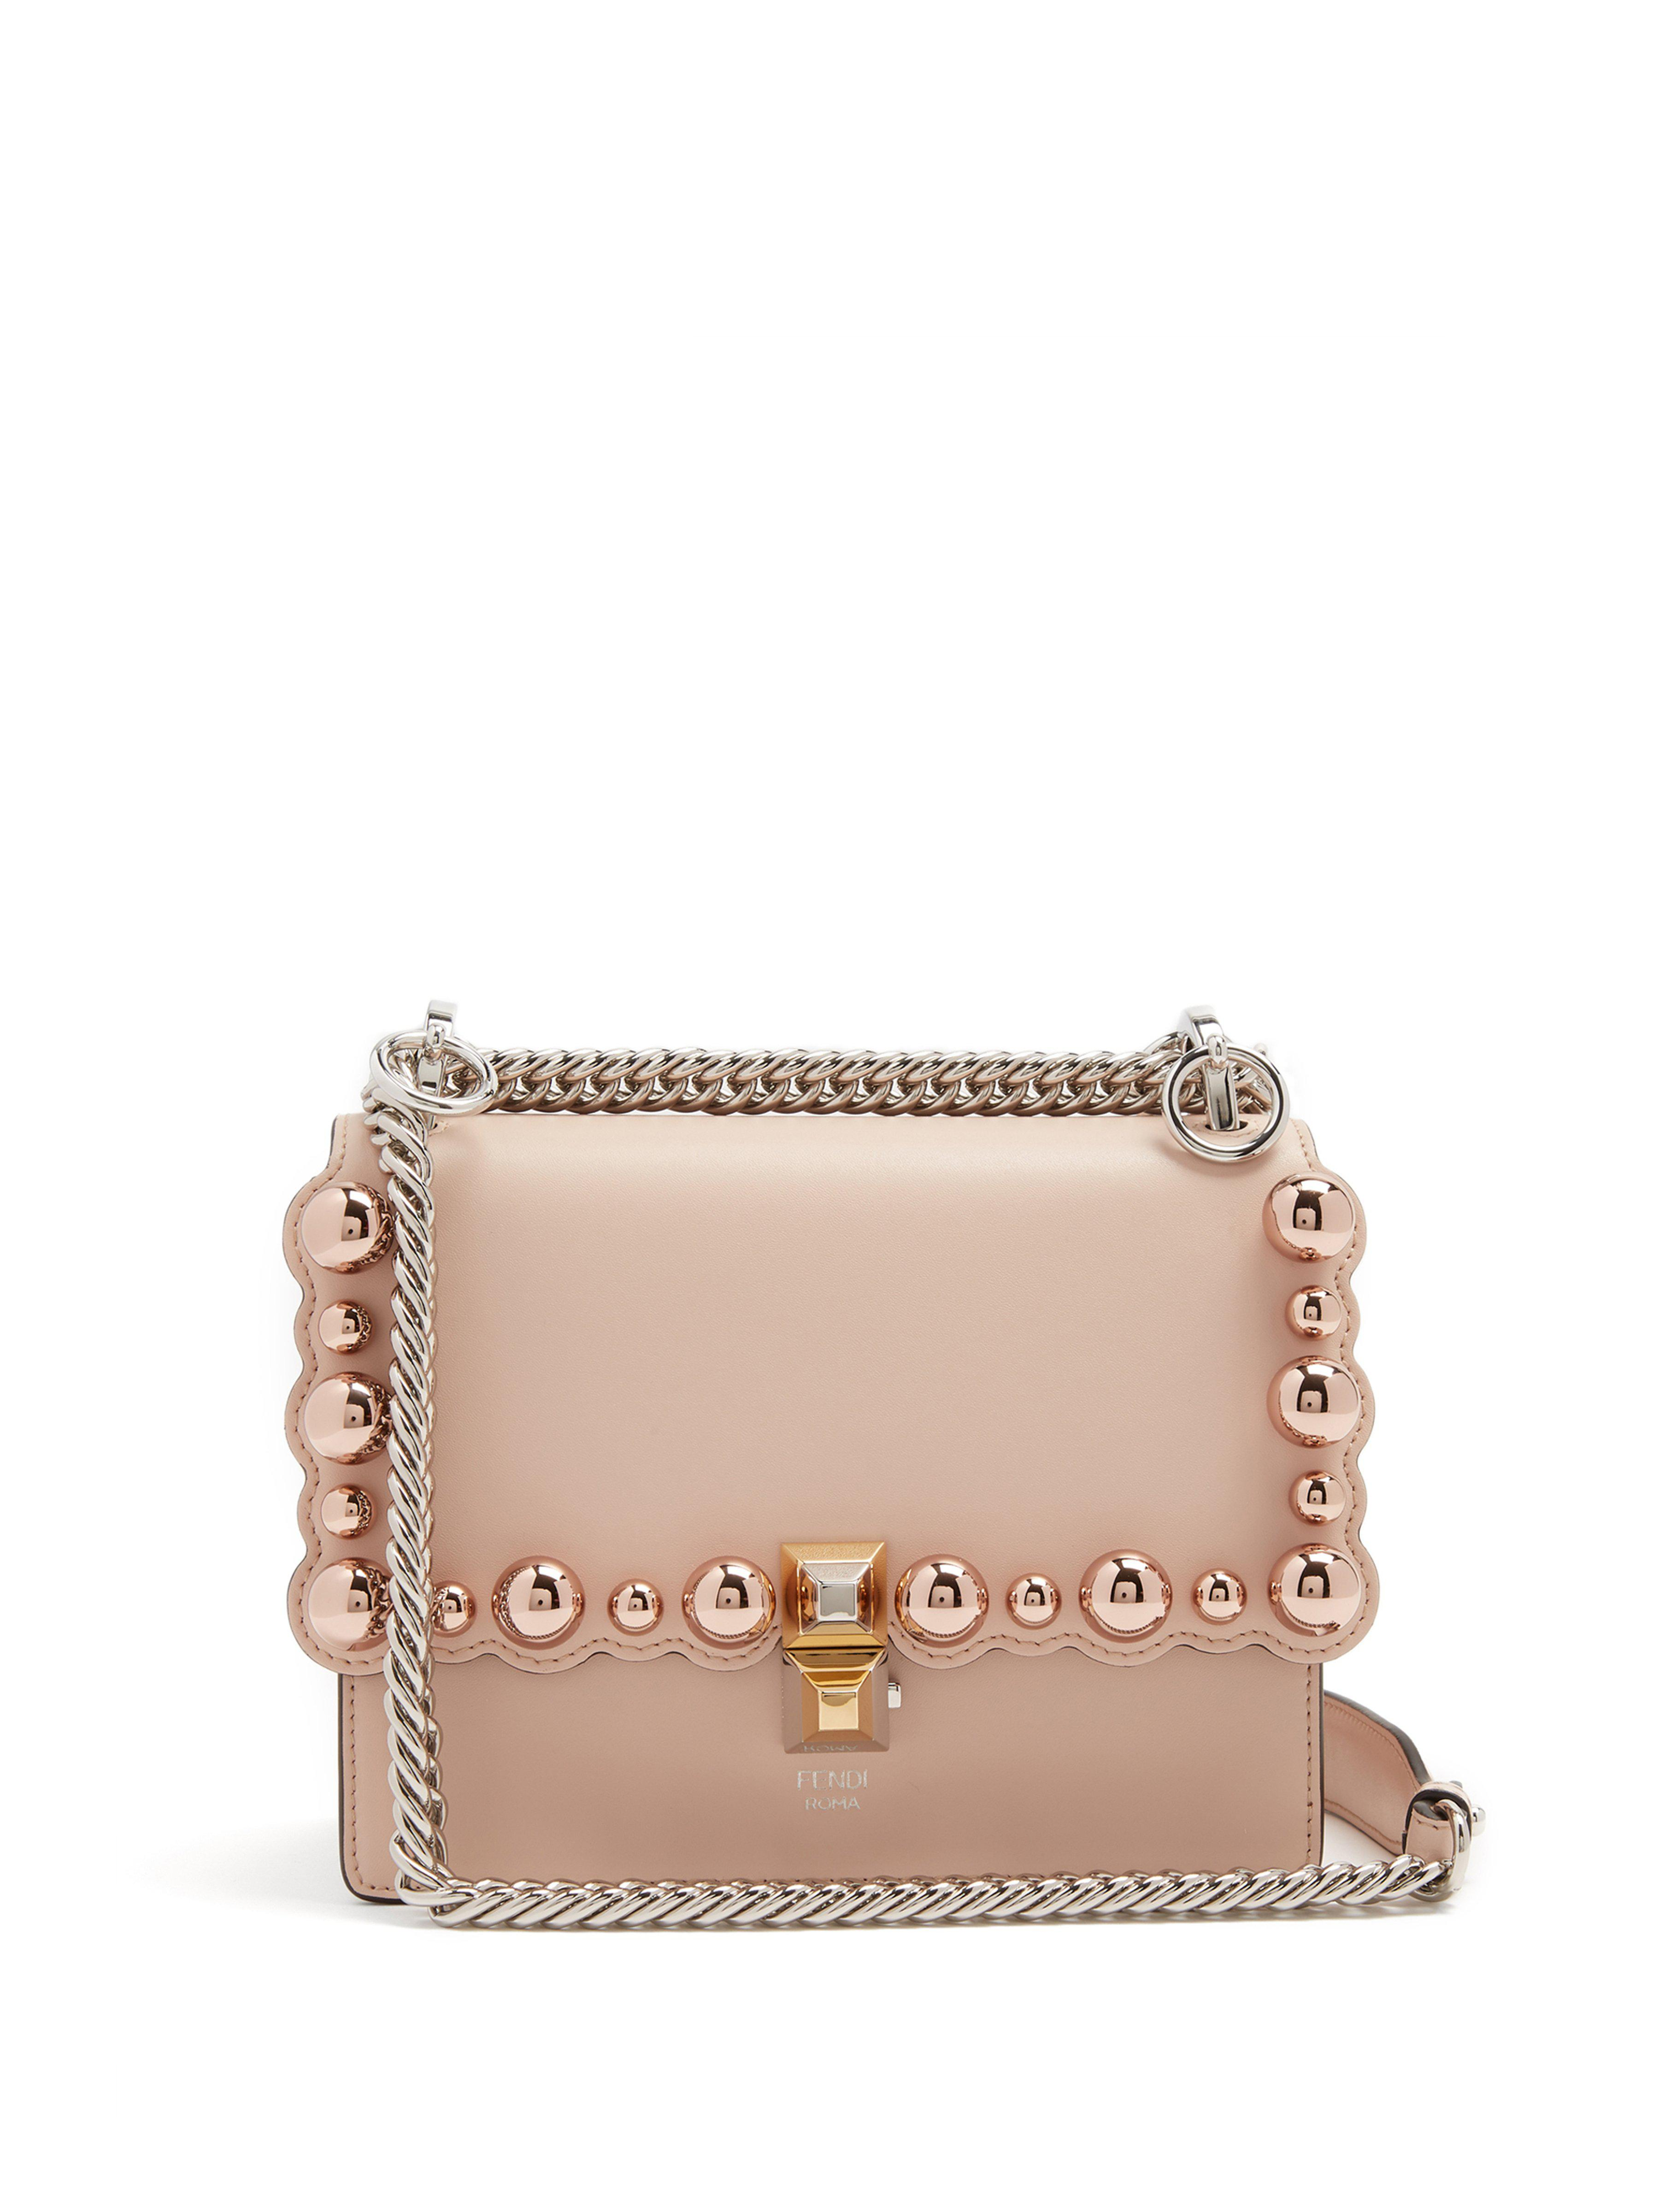 Fendi Kan I Small Embellished Leather Cross Body Bag in Pink - Lyst 5c06924491273